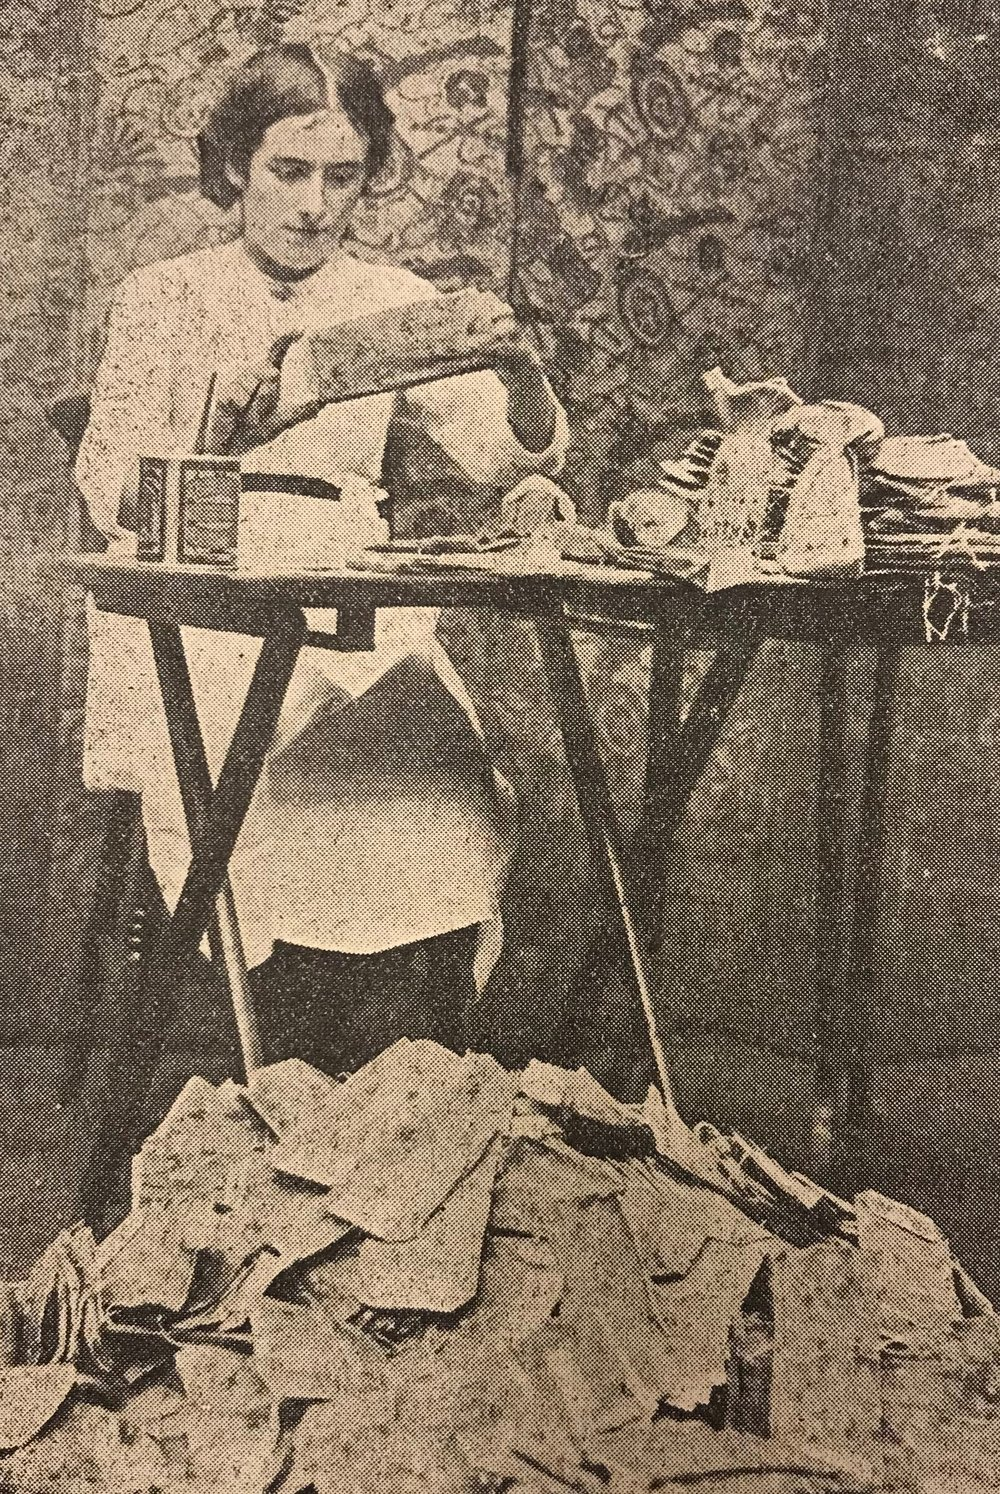 Women workers making bags formerly manufactured in Germany. From the Marylebone Record.